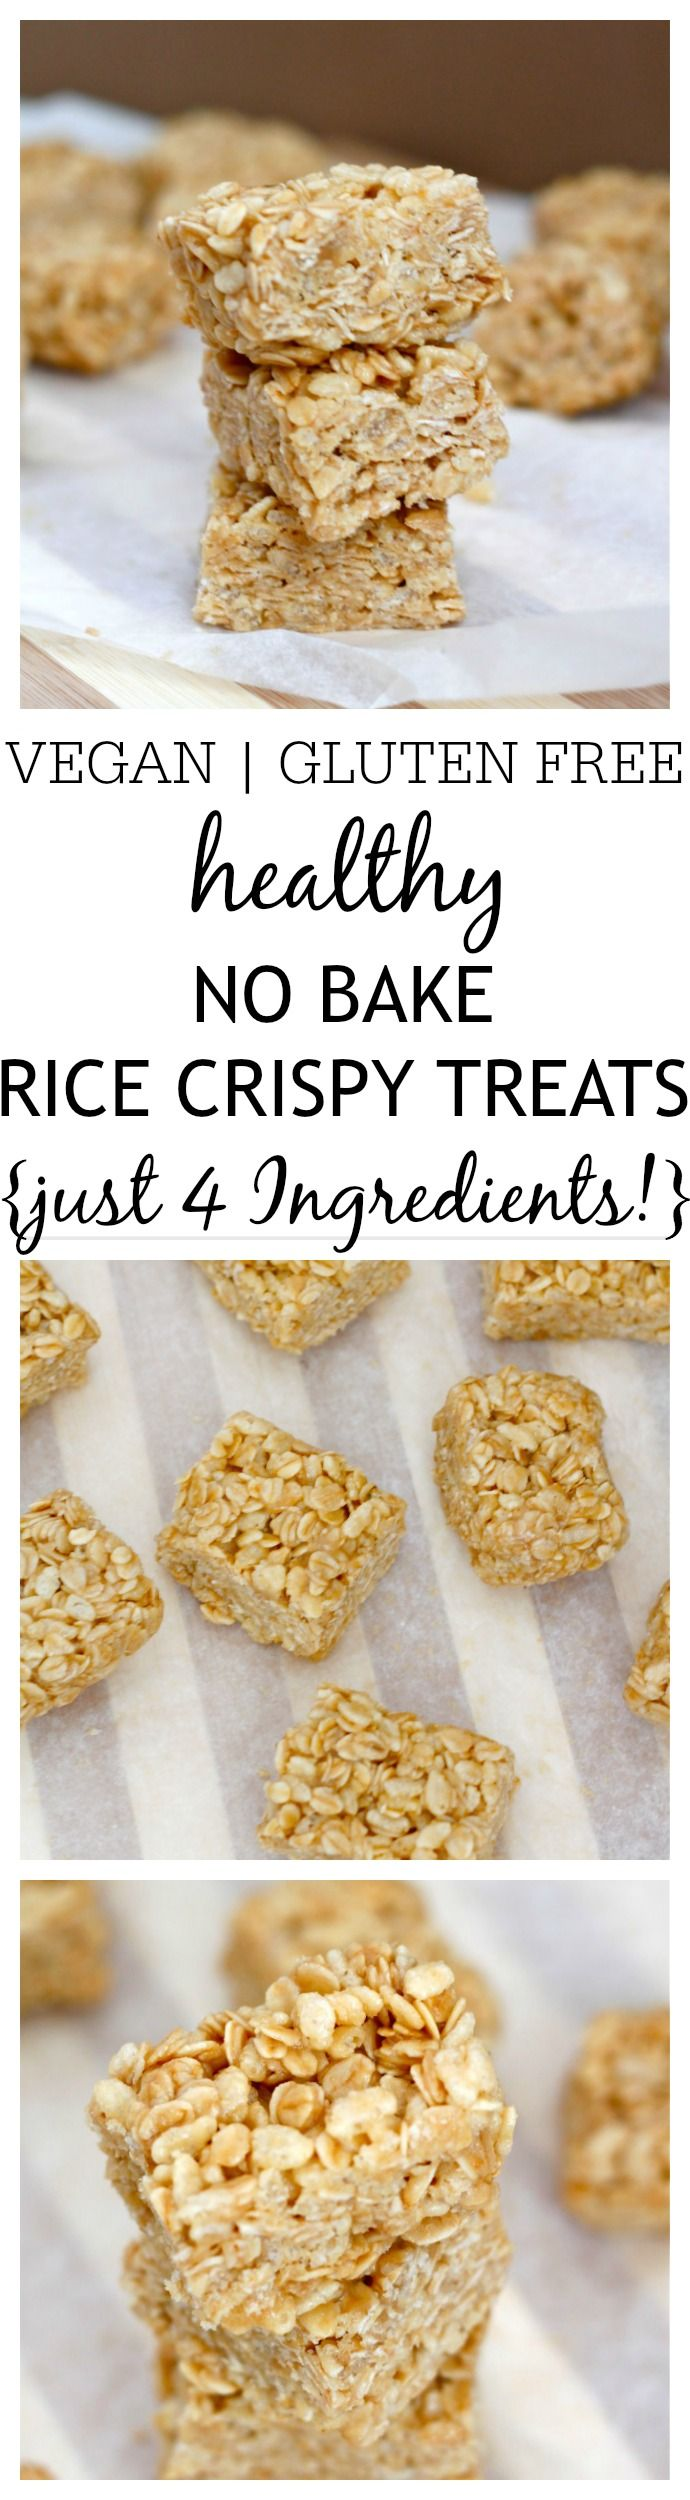 Healthy Four Ingredient No Bake Rice Crispy Treats- Just four healthy ingredients, 1 bowl and 10 minutes is needed to whip up these simple No Bake Rice Crispy Treats! Vegan, gluten free, refined sugar free and dairy free, it's the perfect snack between meals! @thebigmansworld - thebigmansworld.com